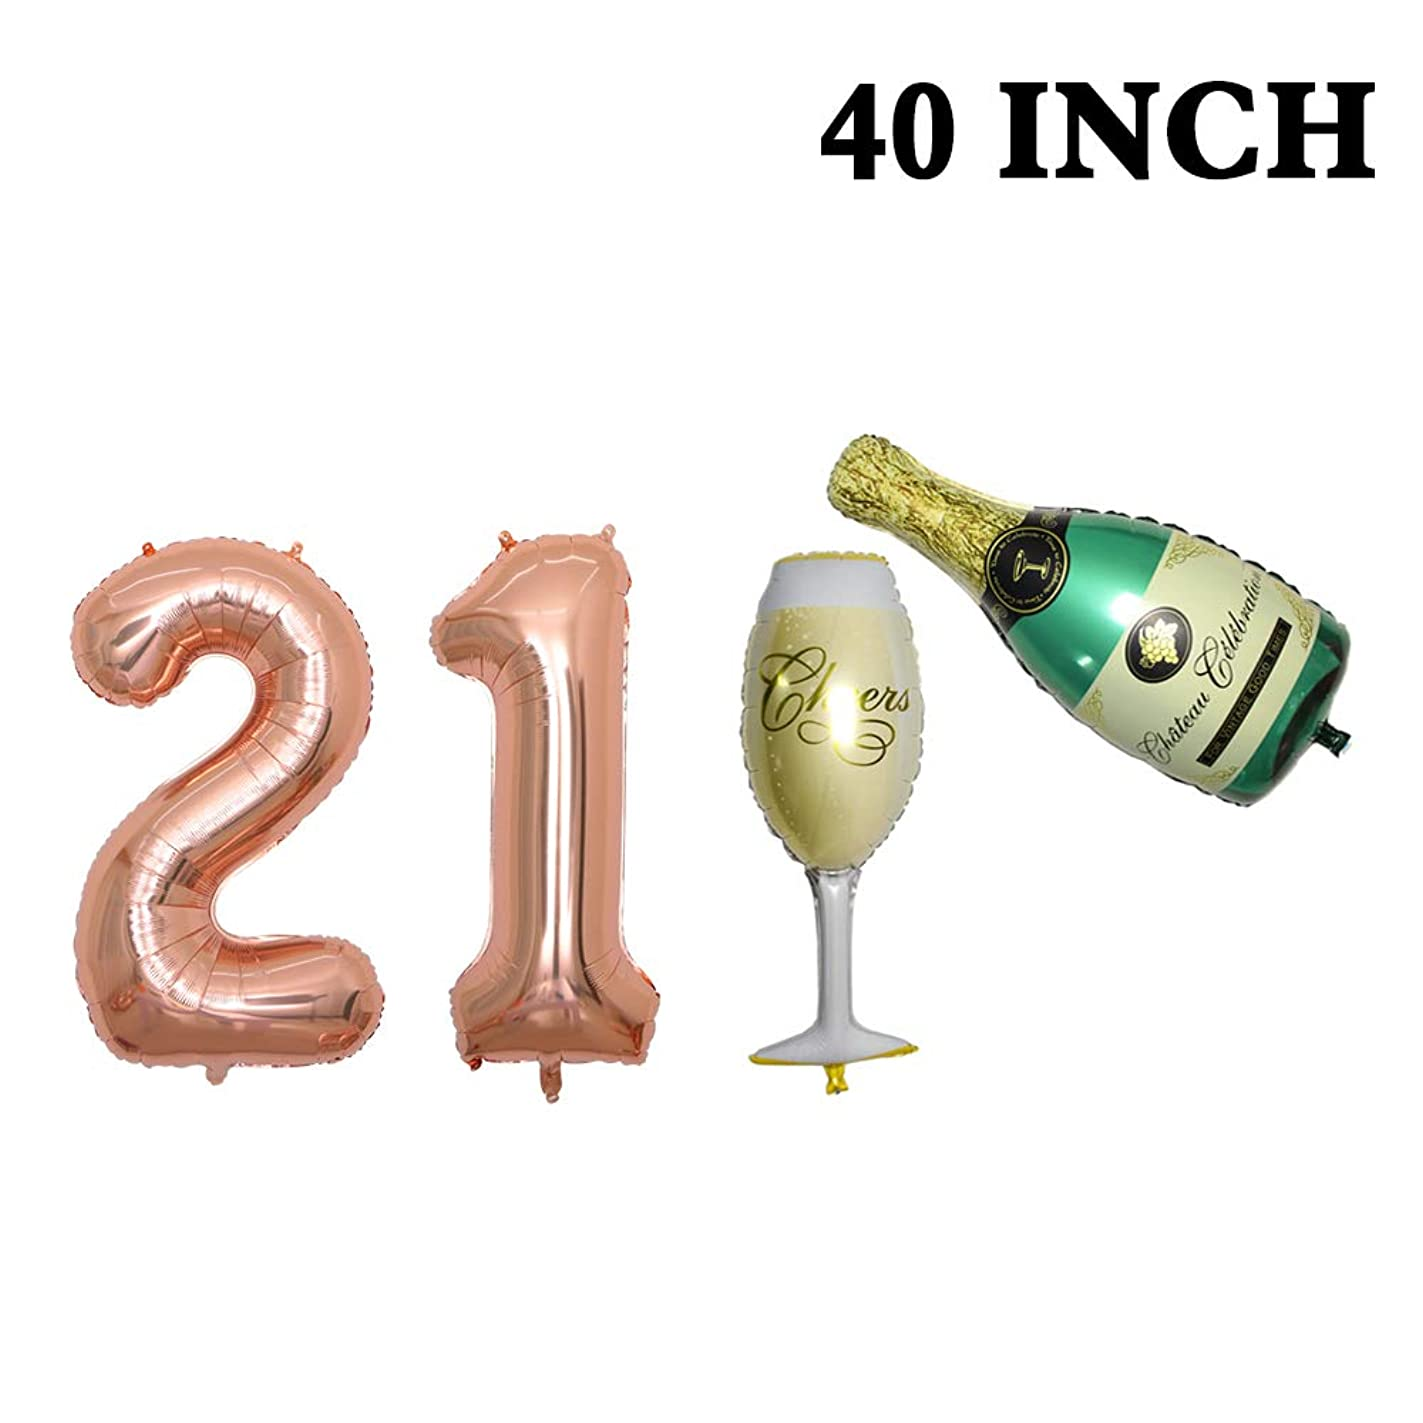 Number 21 Balloons, Rose Gold - 21 Birthday Decorations | 40Inch Champagne Balloon Set |21st Birthday Balloons Foil Mylar Balloons for Rose Gold Party Supplies | 21 Birthday Party Decorations. lmh27034149